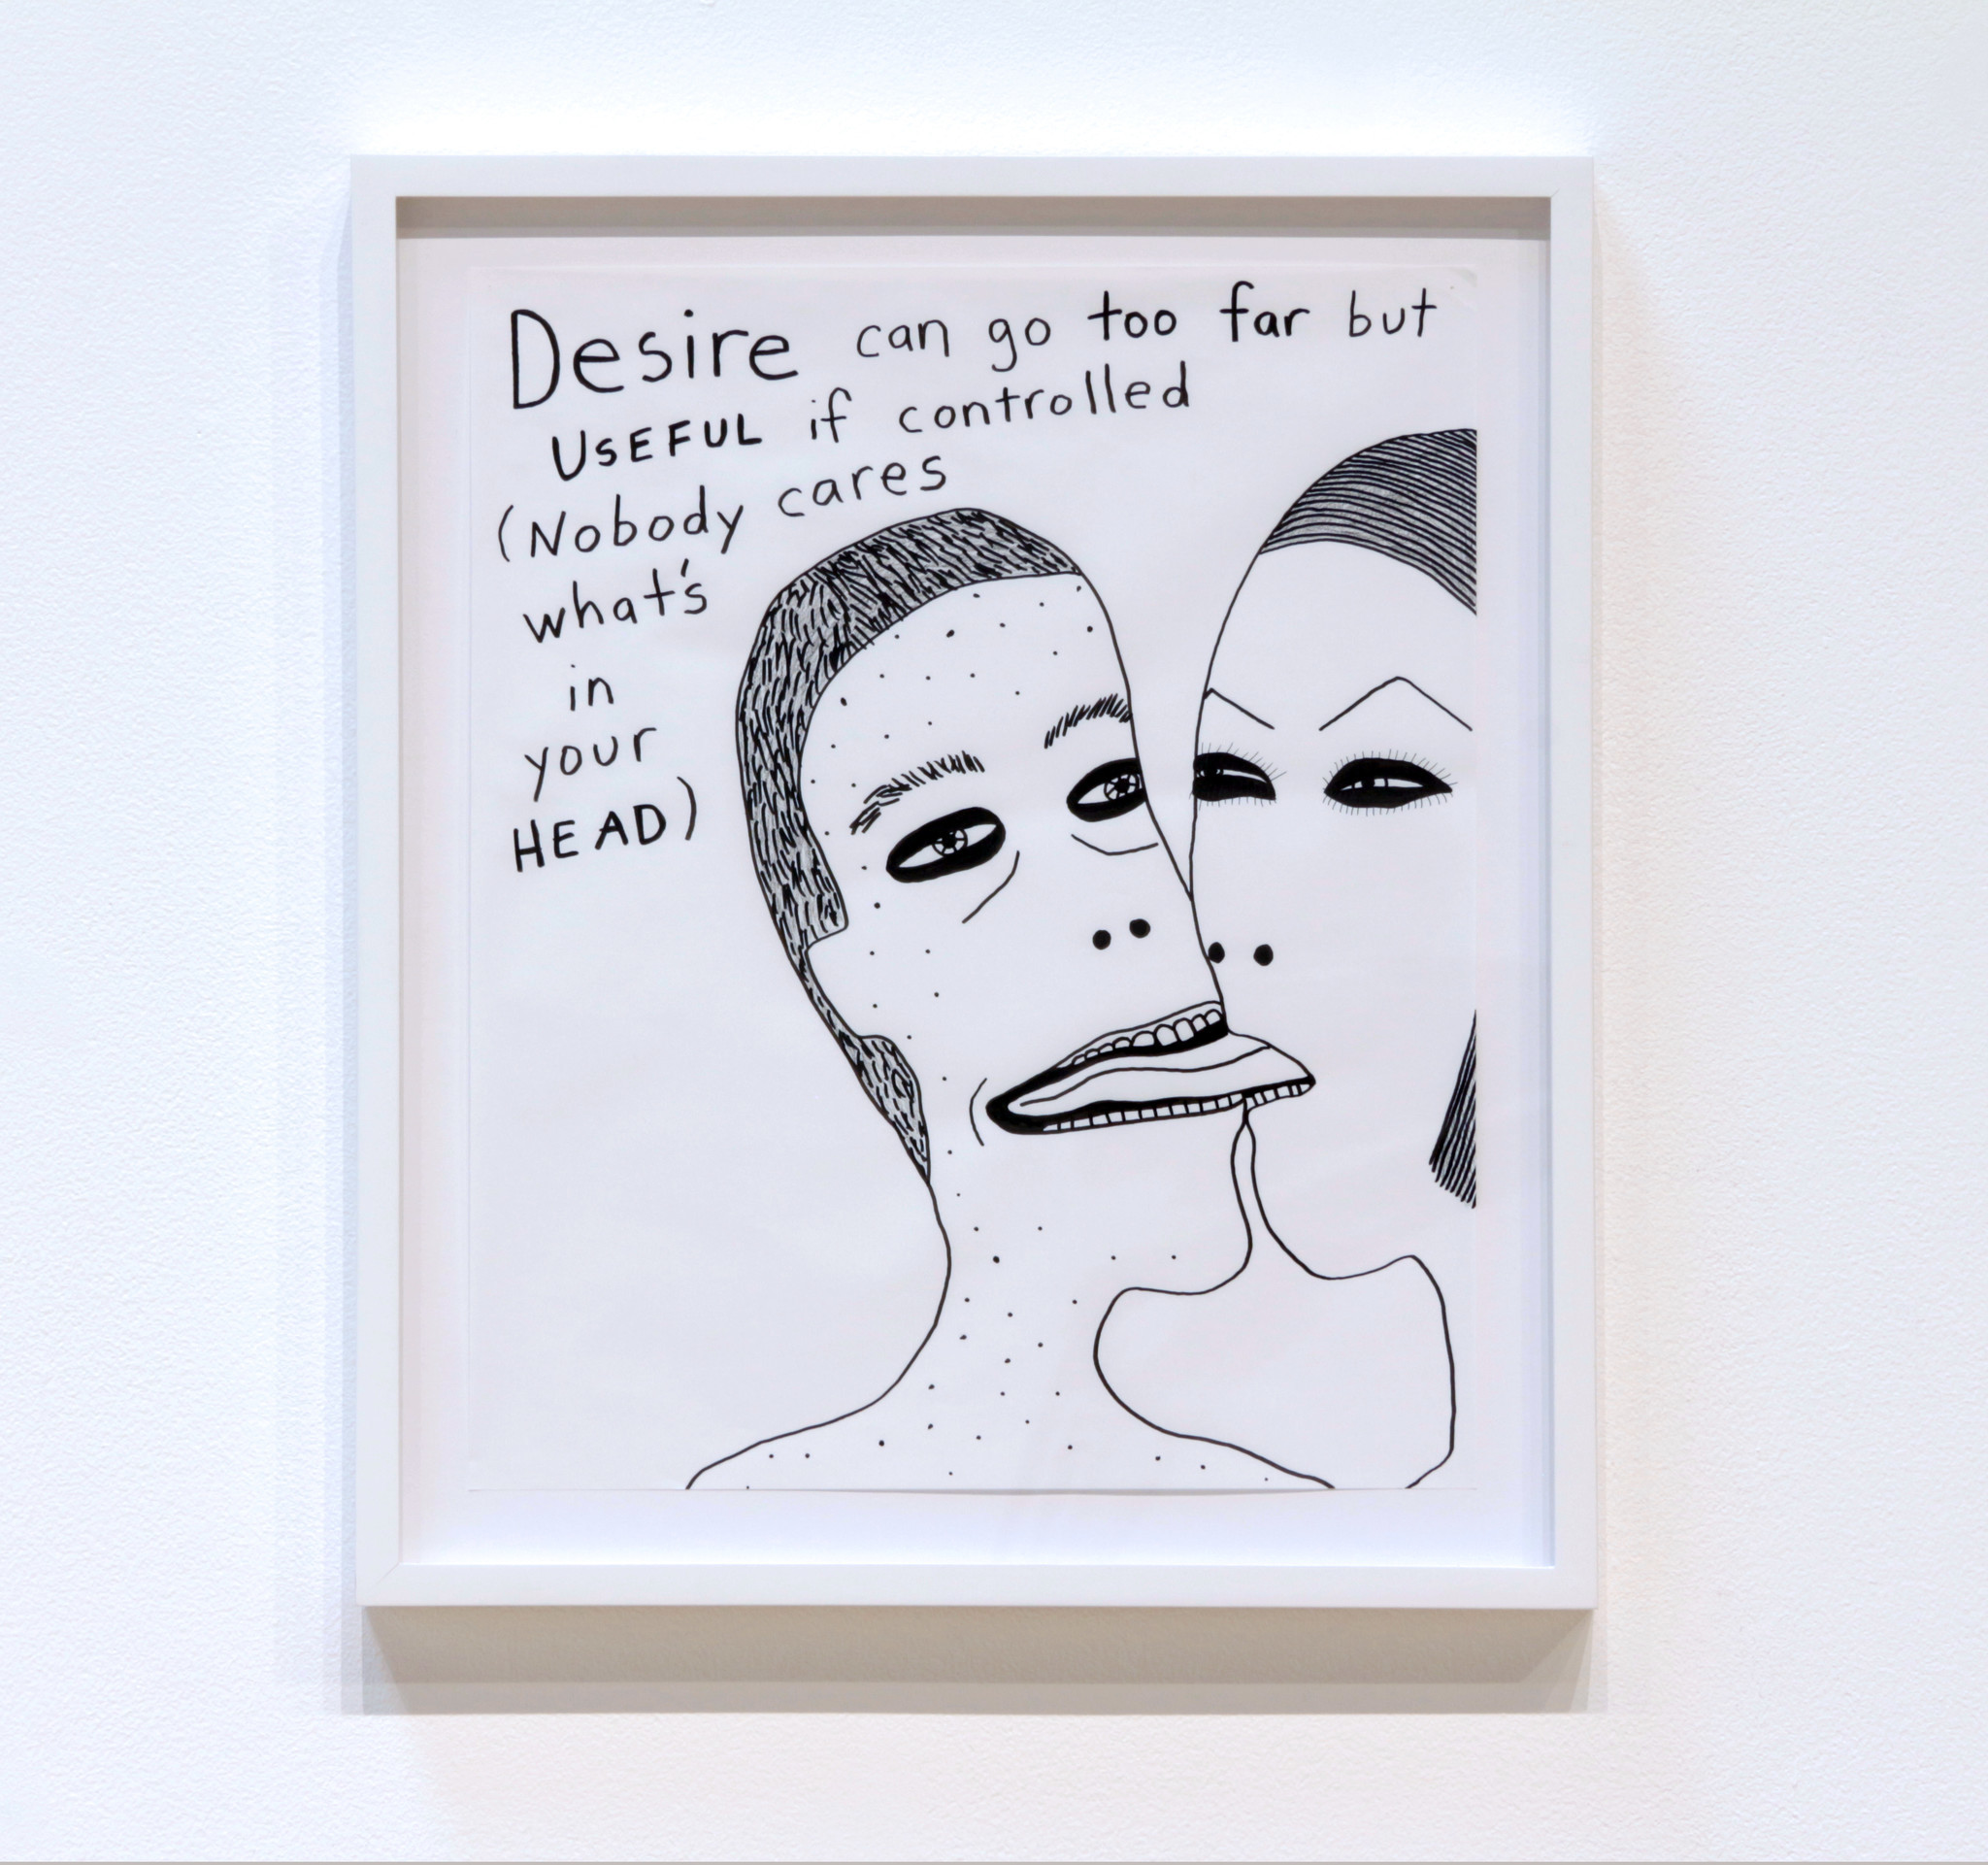 """Laylah Ali, Untitled from """"Commonplace Drawings,"""" 2016. Text by Octavia E. Butler. Credit: Paul Kasmin Gallery. Image from Armory Center for the Arts"""